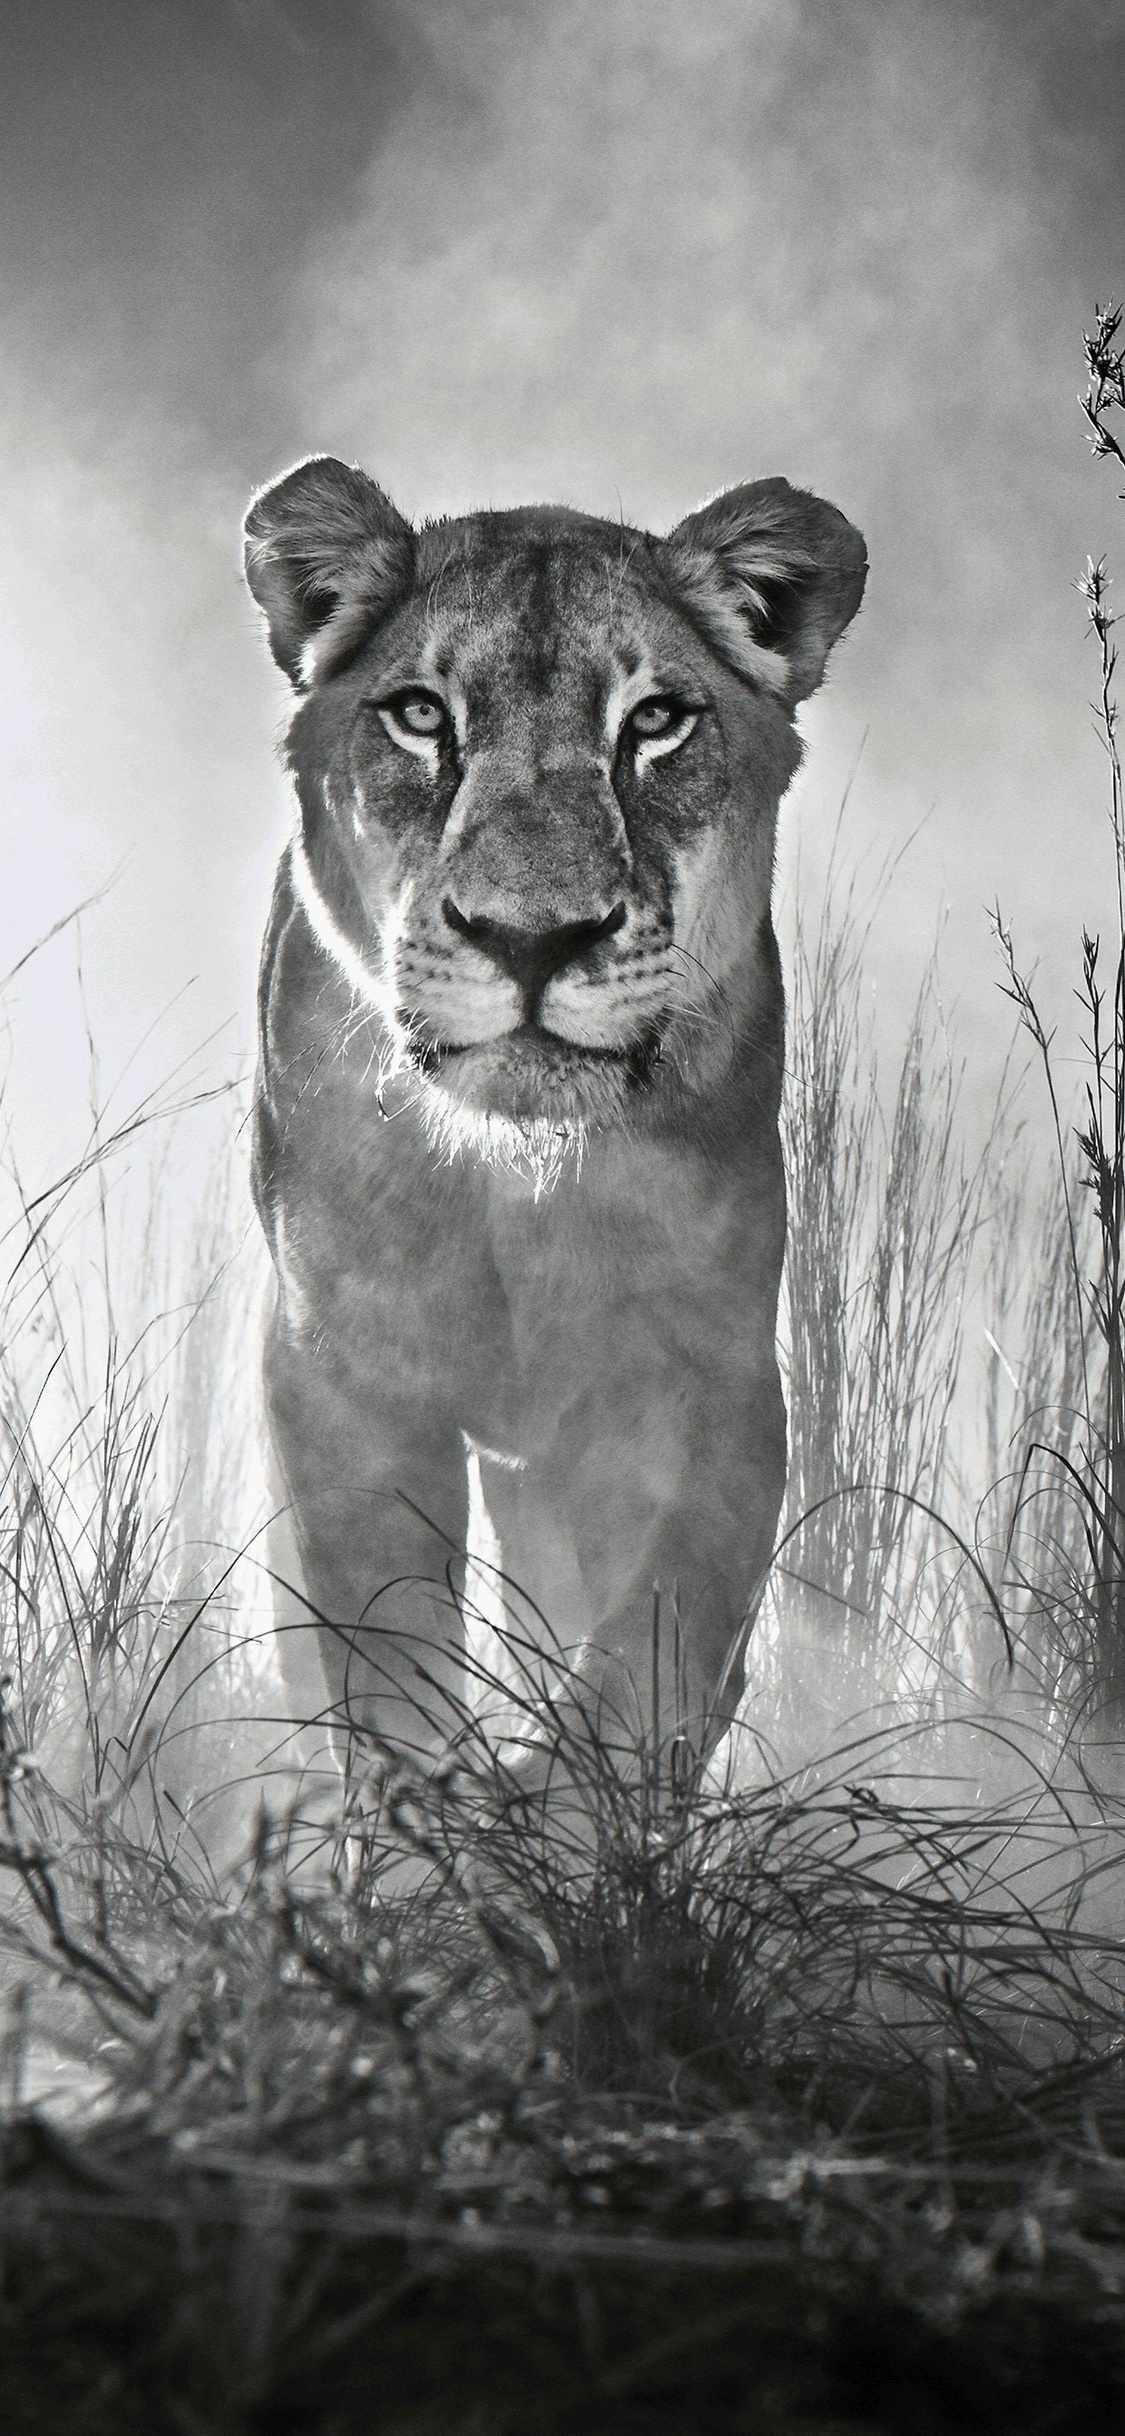 1125x2436 Lion 4k Black And White Iphone Xs Iphone 10 Iphone X Hd 4k